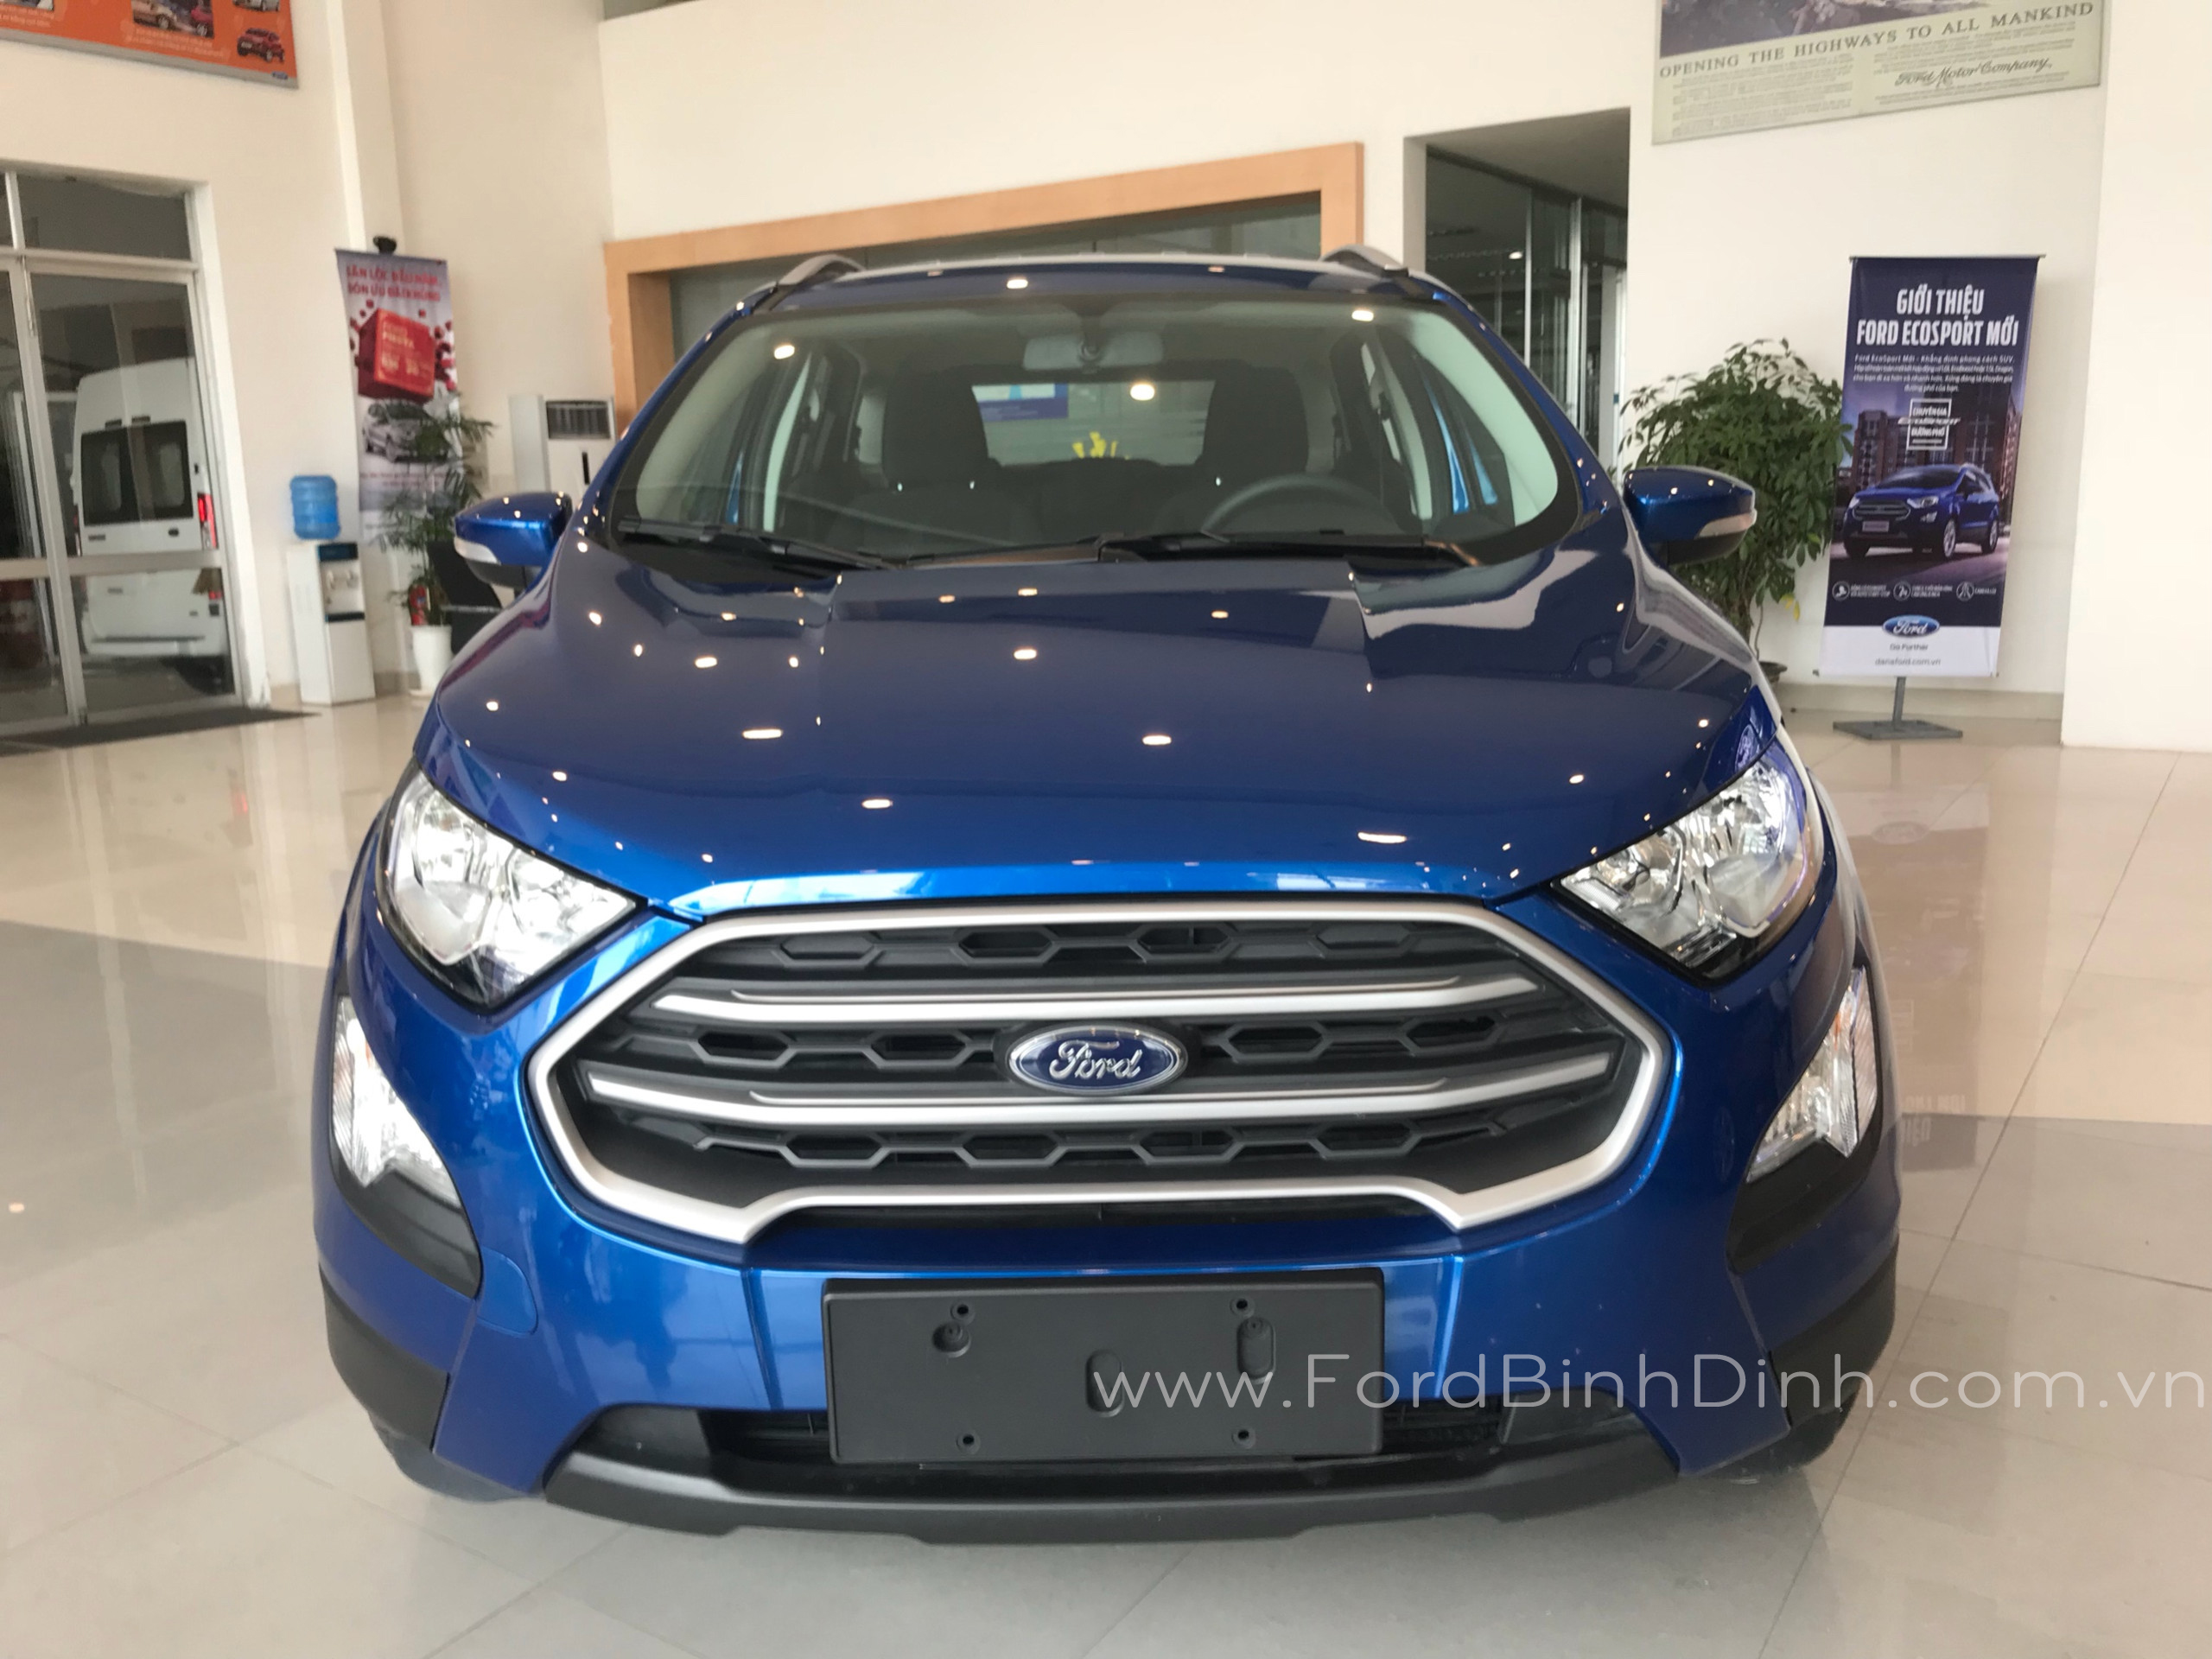 ecosport-2018-trend-at-ford-binh-dinh-com-vn